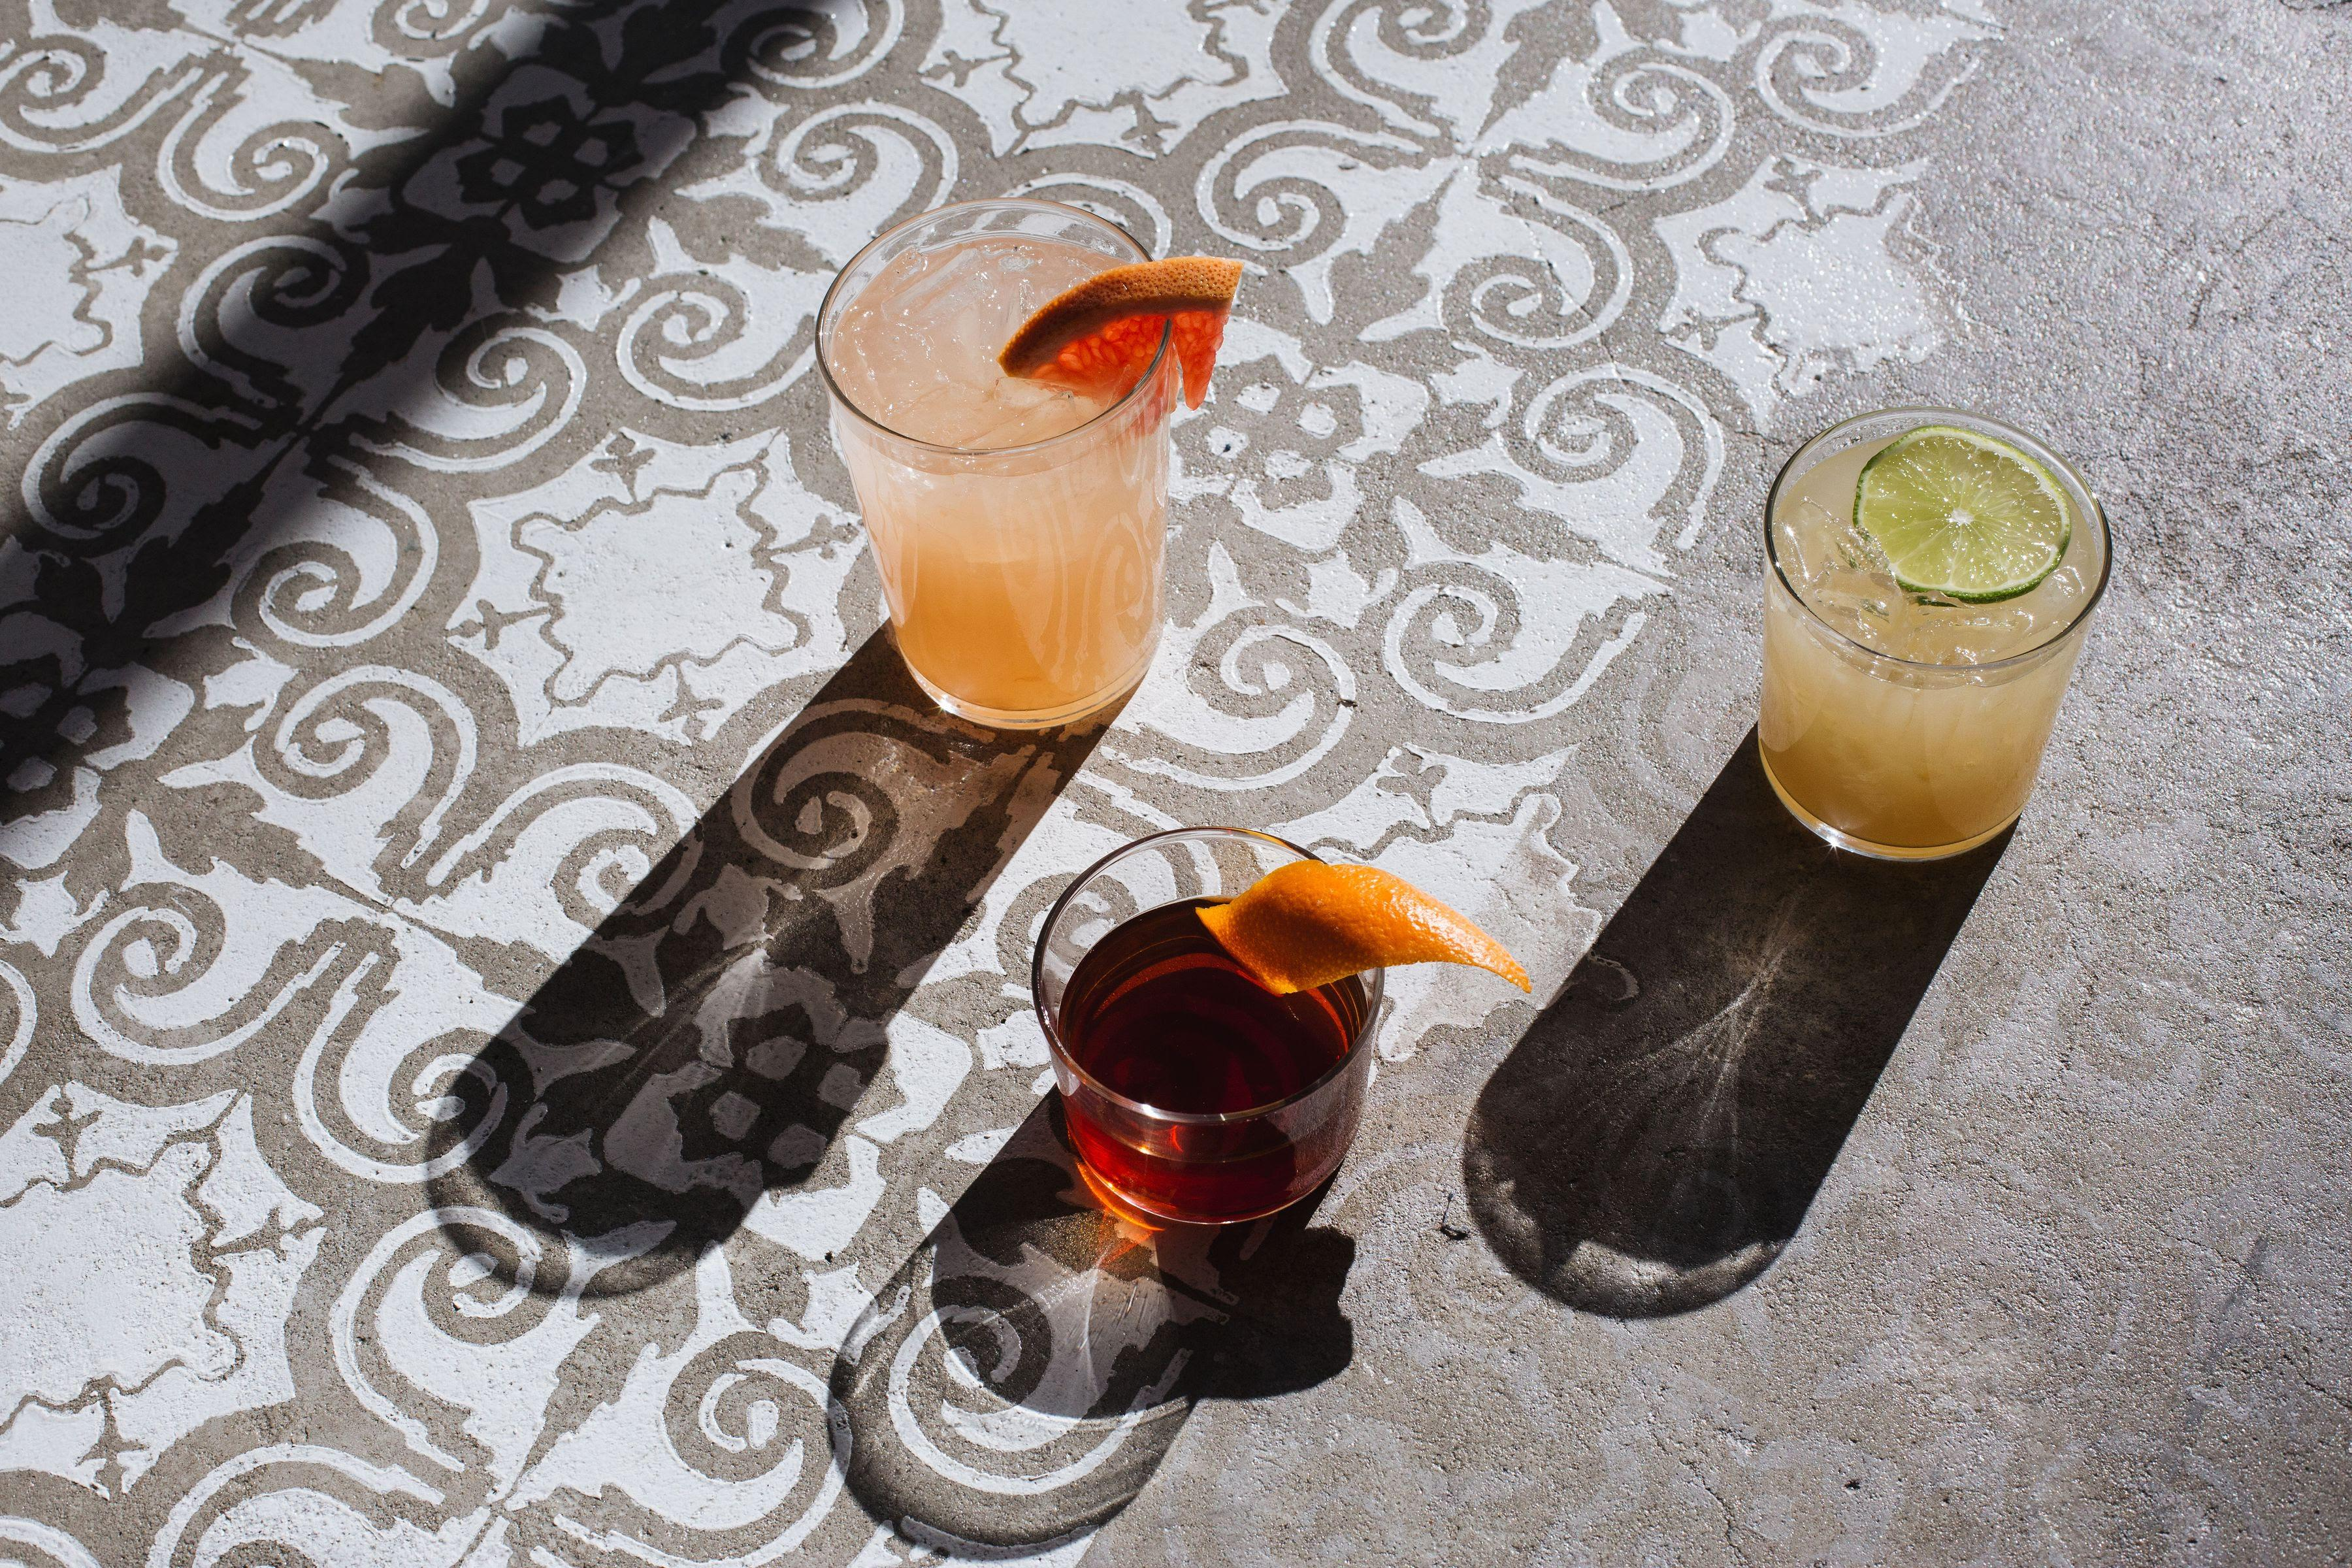 The new cocktails at Chaia in Chinatown. (Image: Maya Oren)